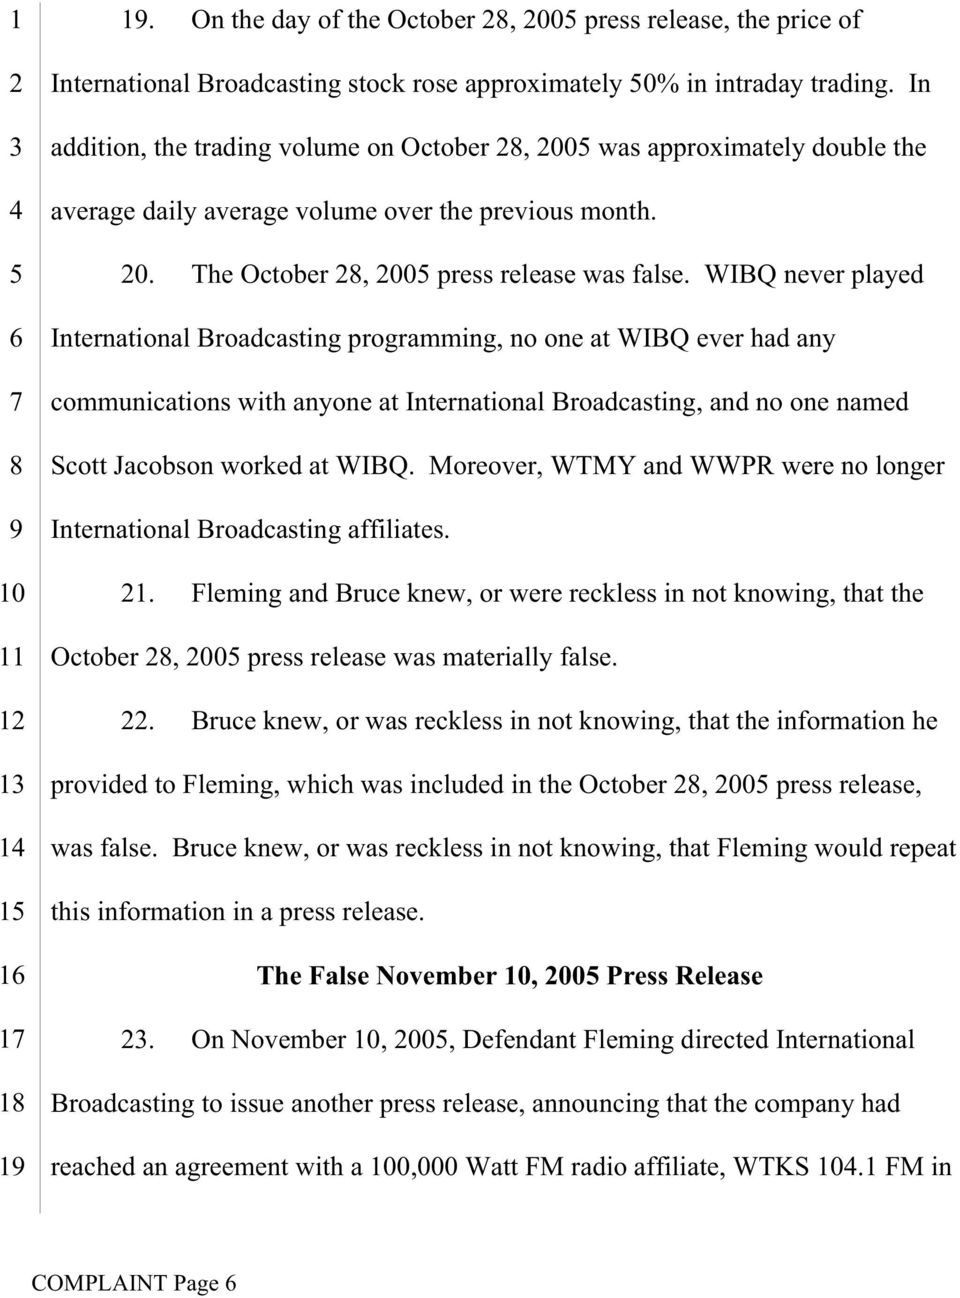 WIBQ never played International Broadcasting programming, no one at WIBQ ever had any communications with anyone at International Broadcasting, and no one named Scott Jacobson worked at WIBQ.